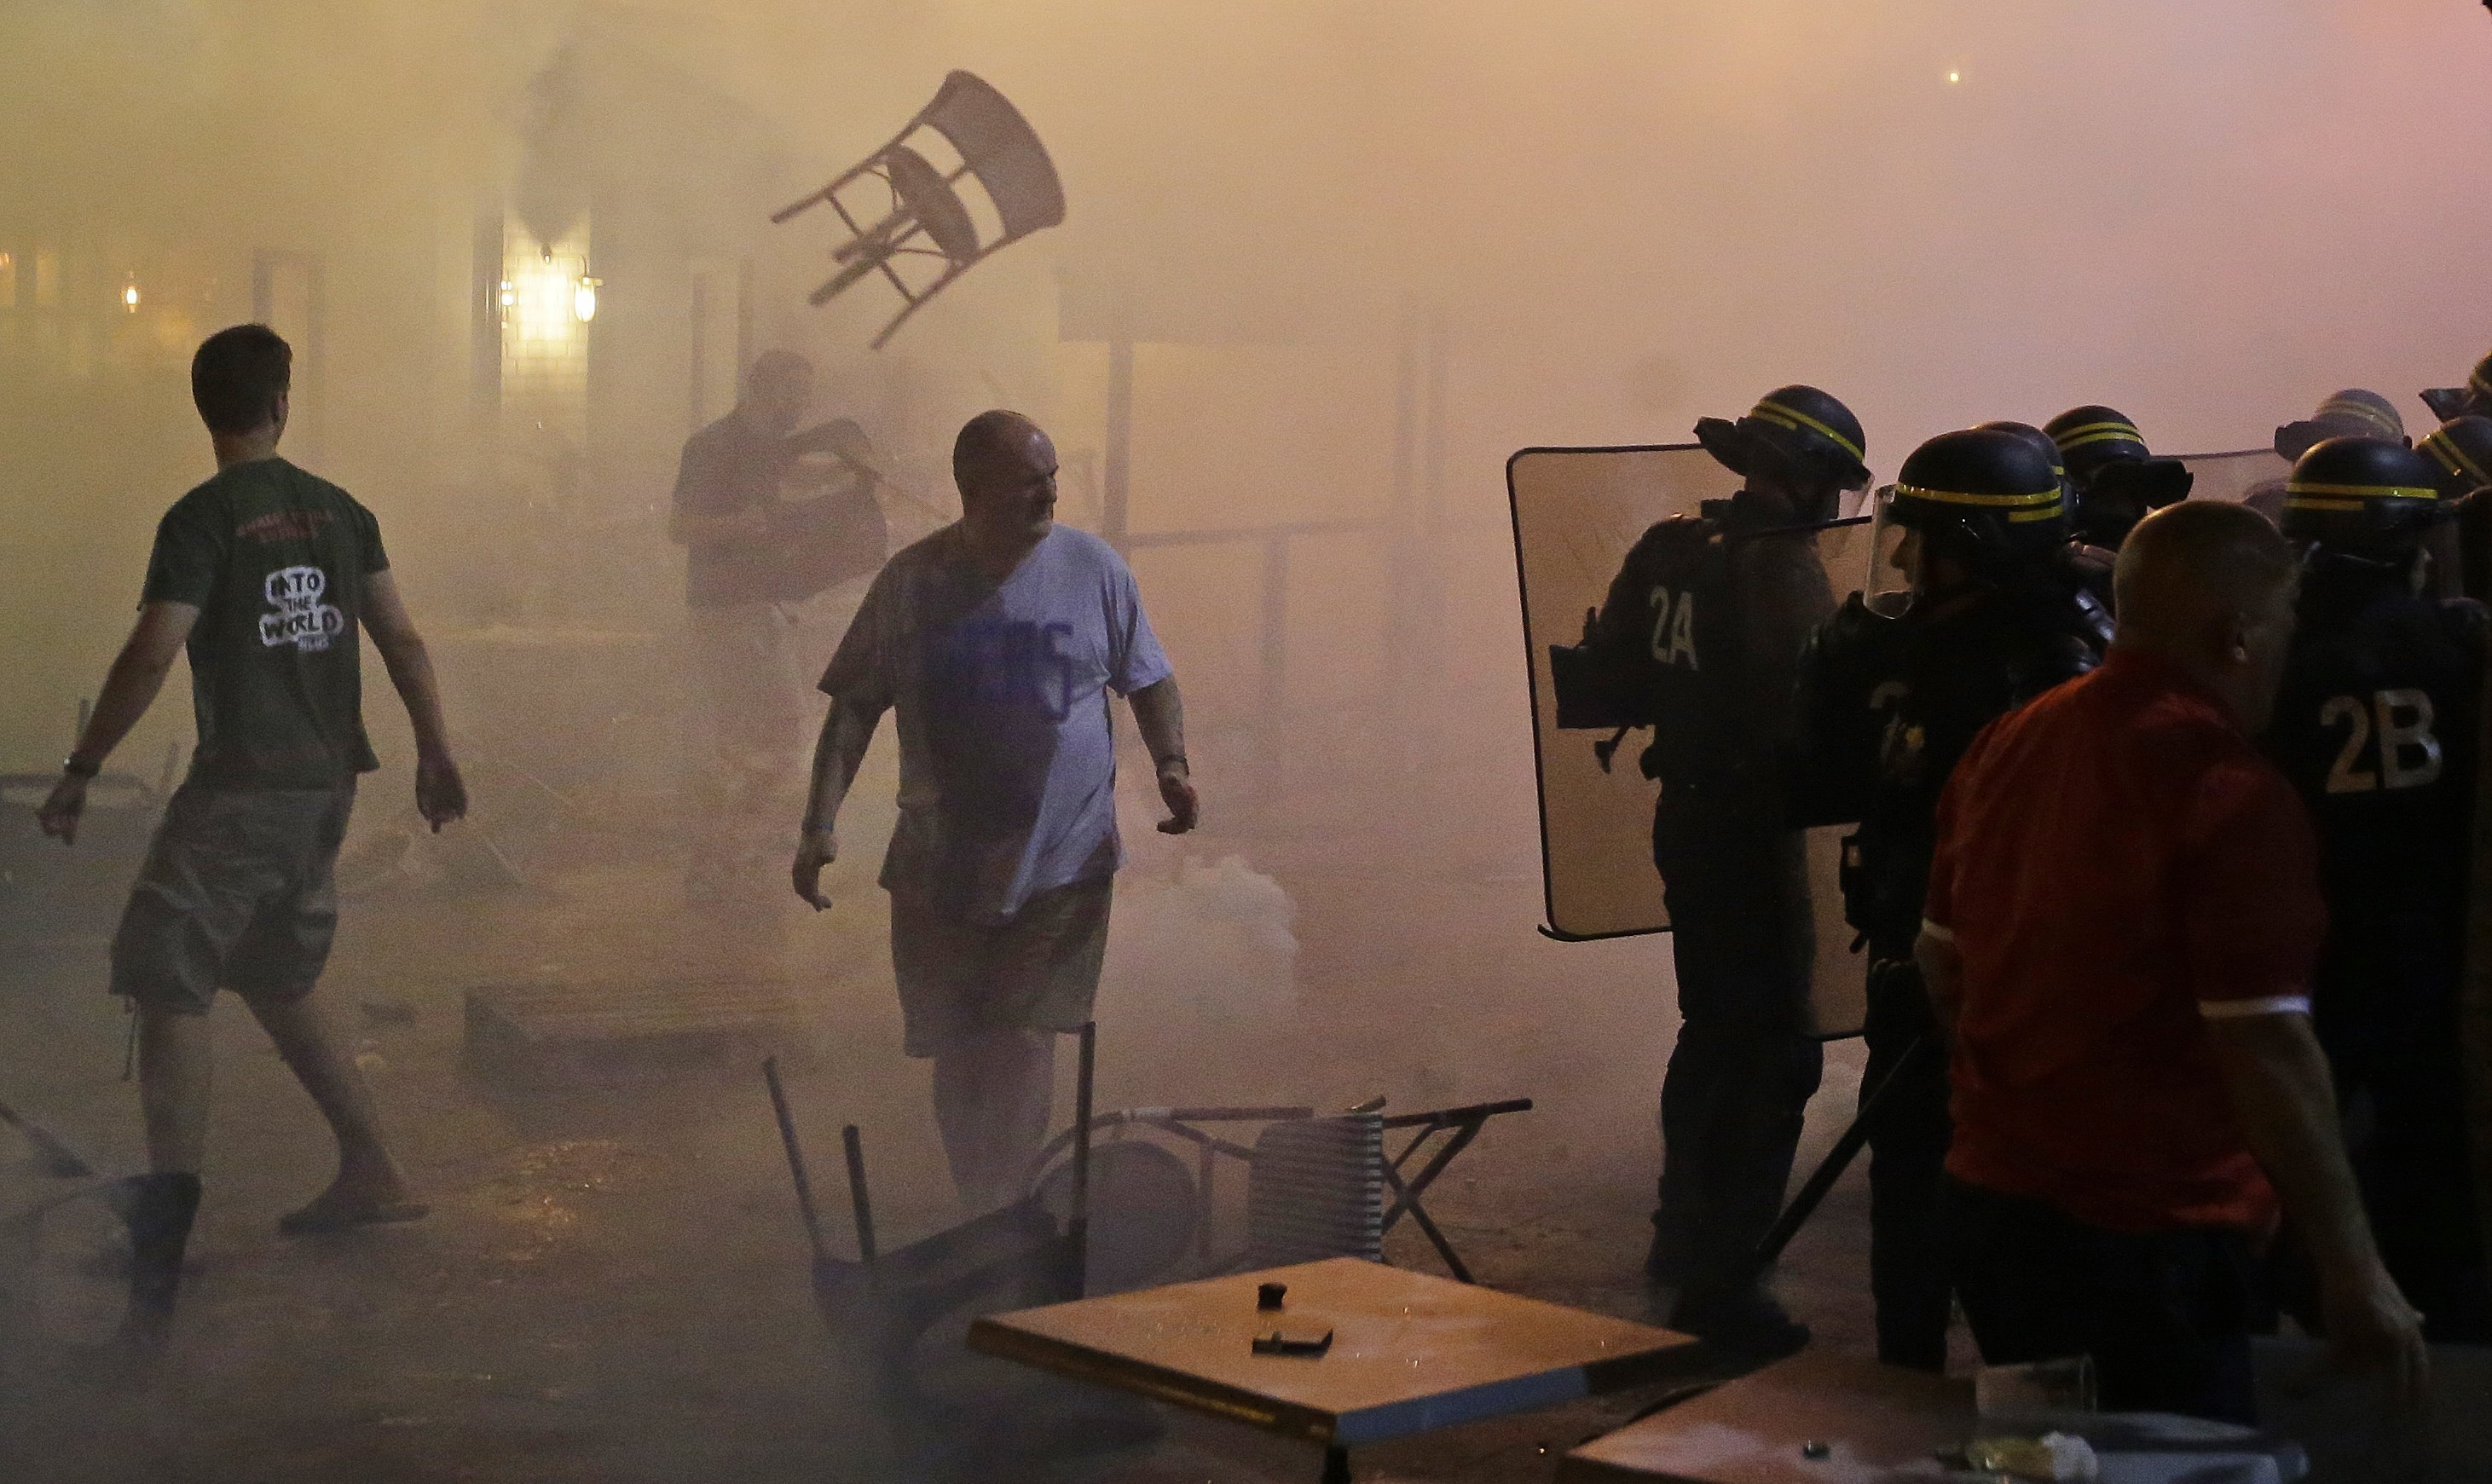 A chair flies through the air during clashes between police and England supporters in downtown Marseille.